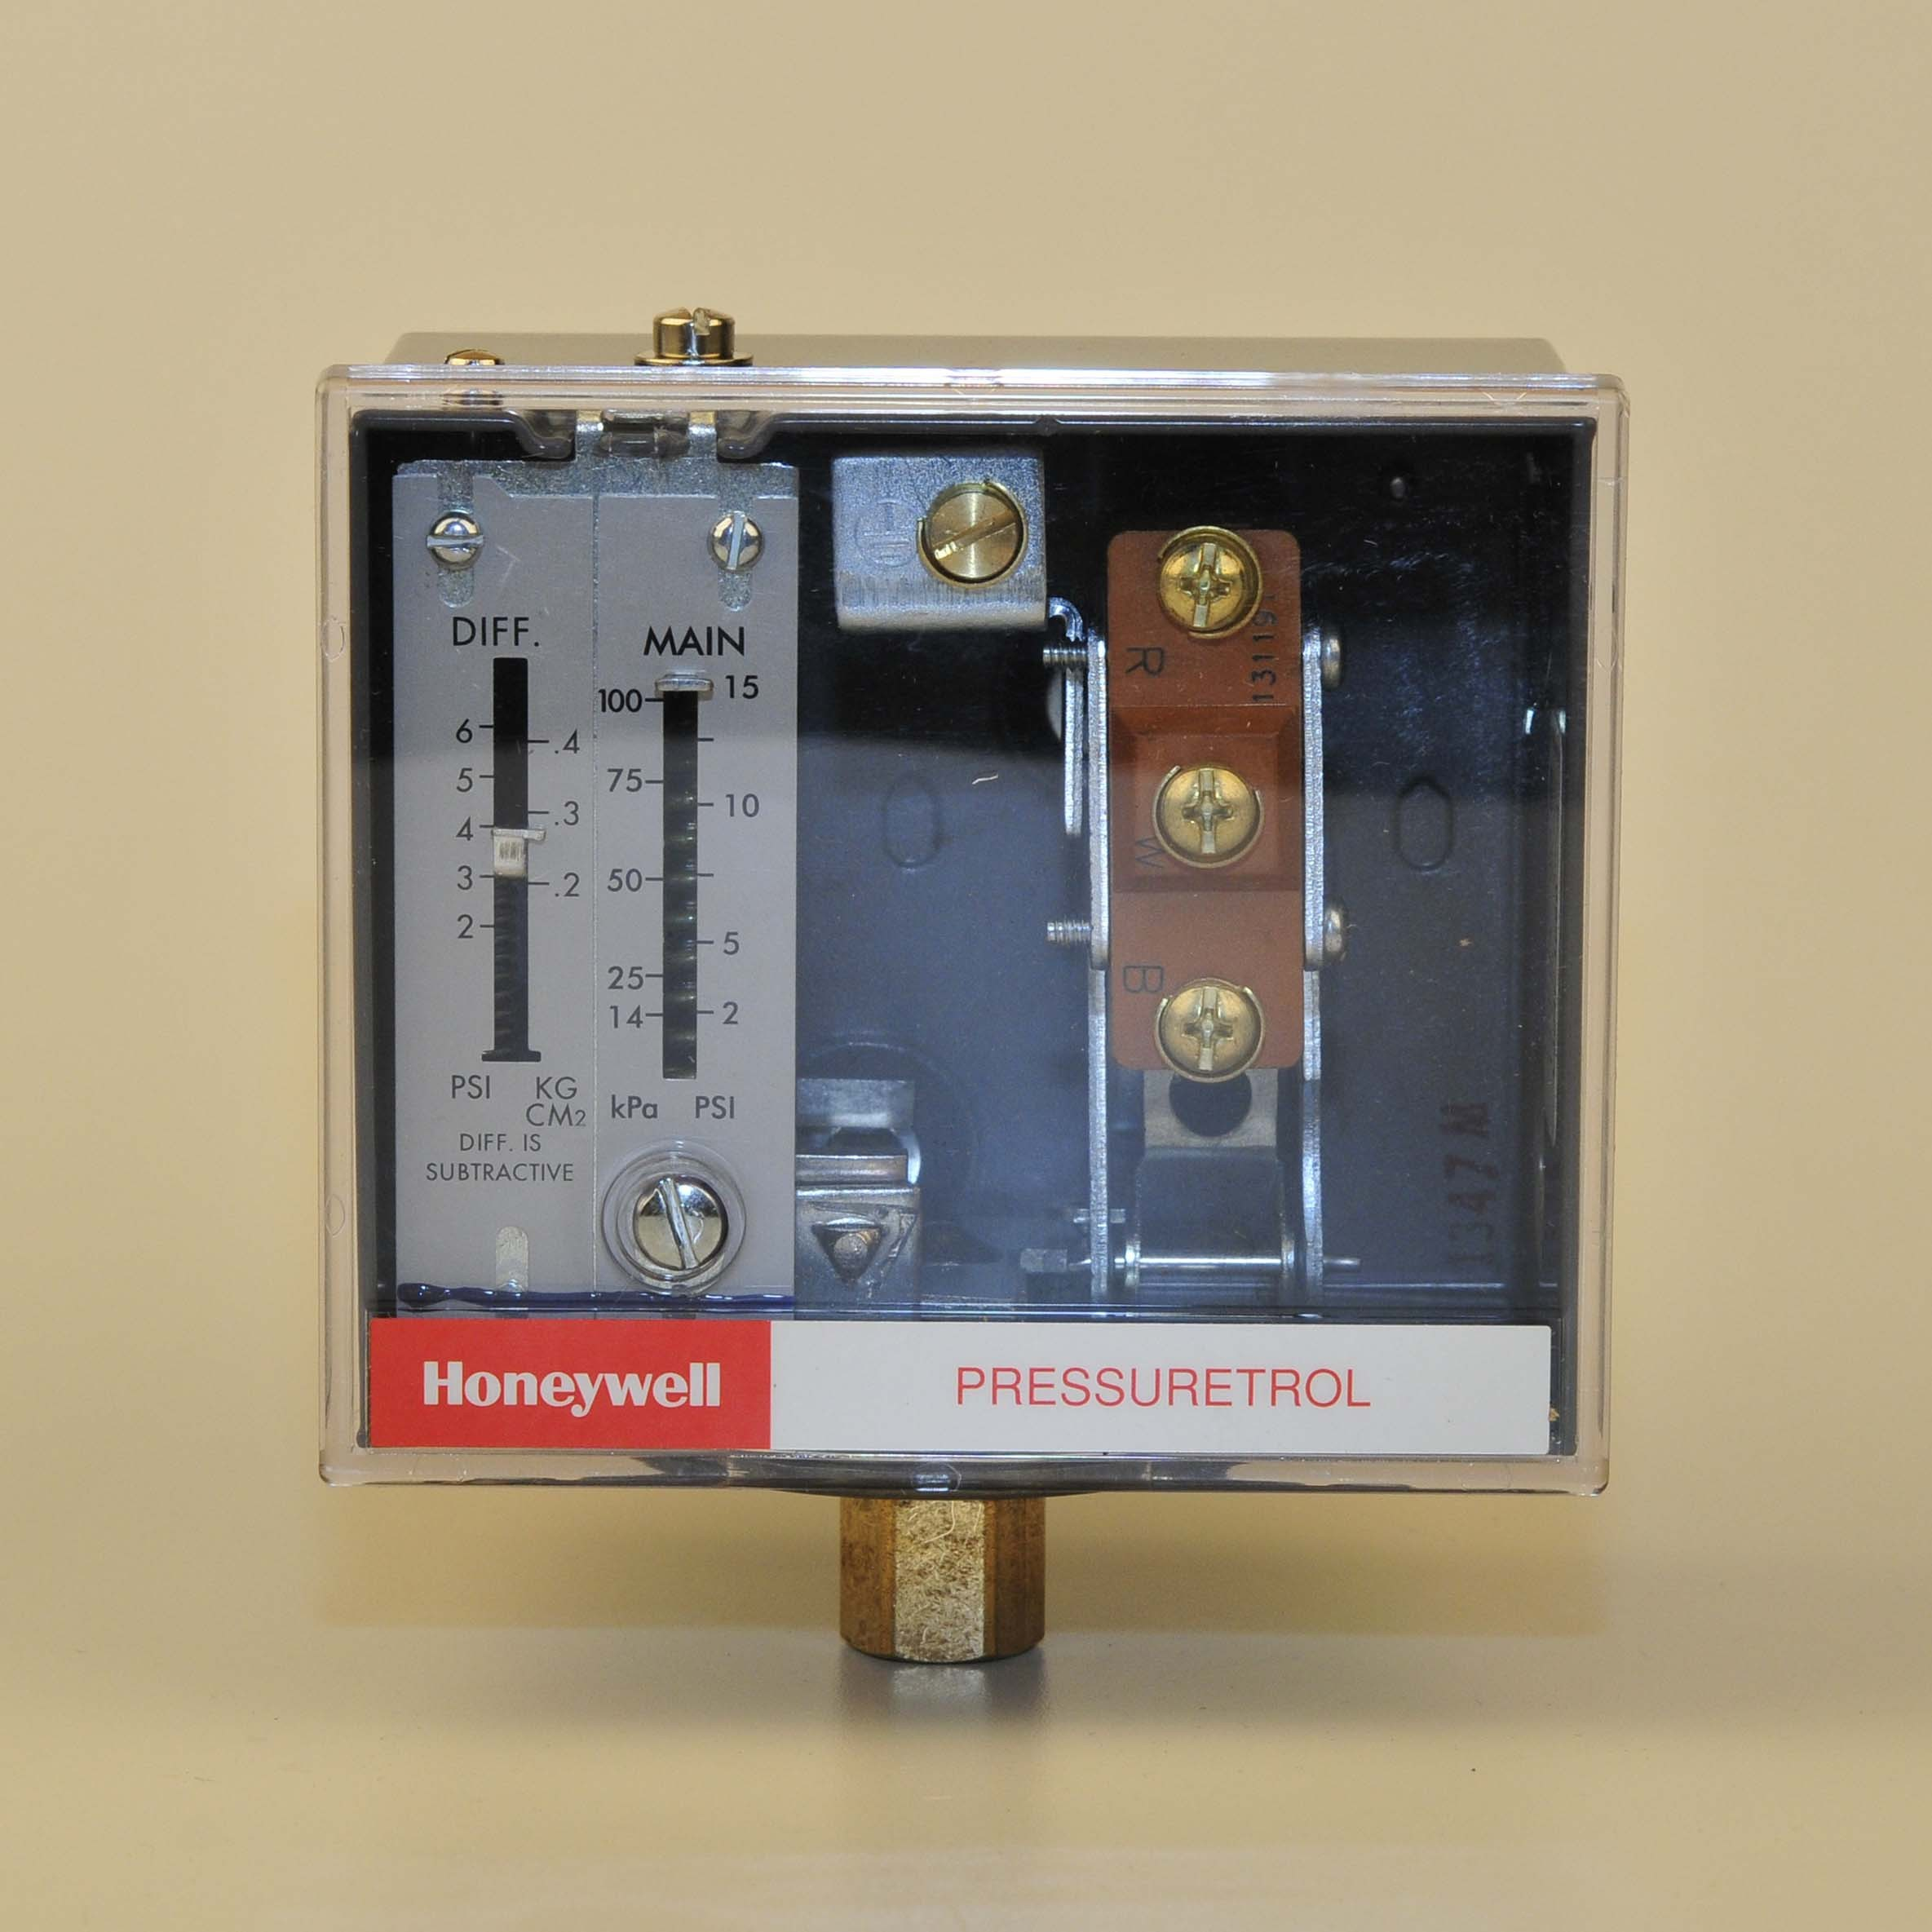 Honeywell Pressuretrol Steam Pressure Controls Thermostat Wiring With Two Wires